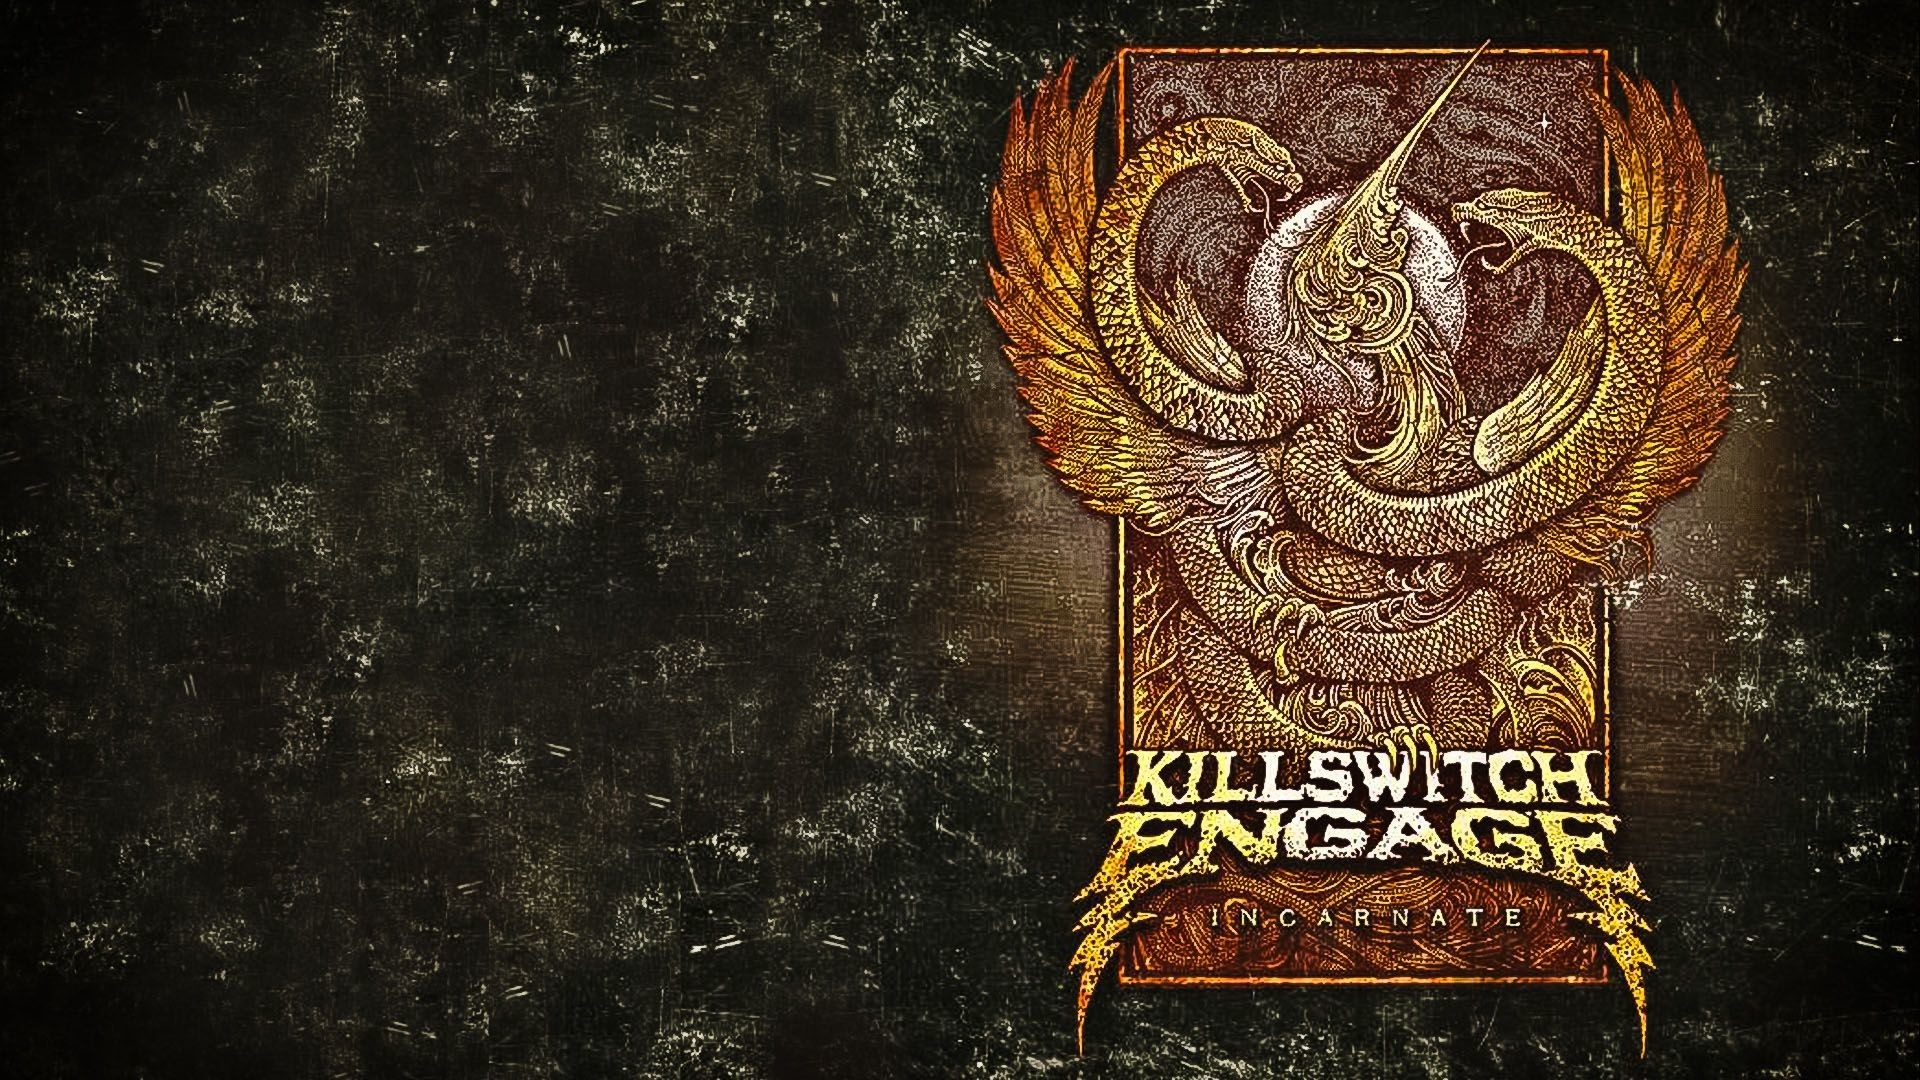 Killswitch Engage Iphone Wallpaper 65 Images